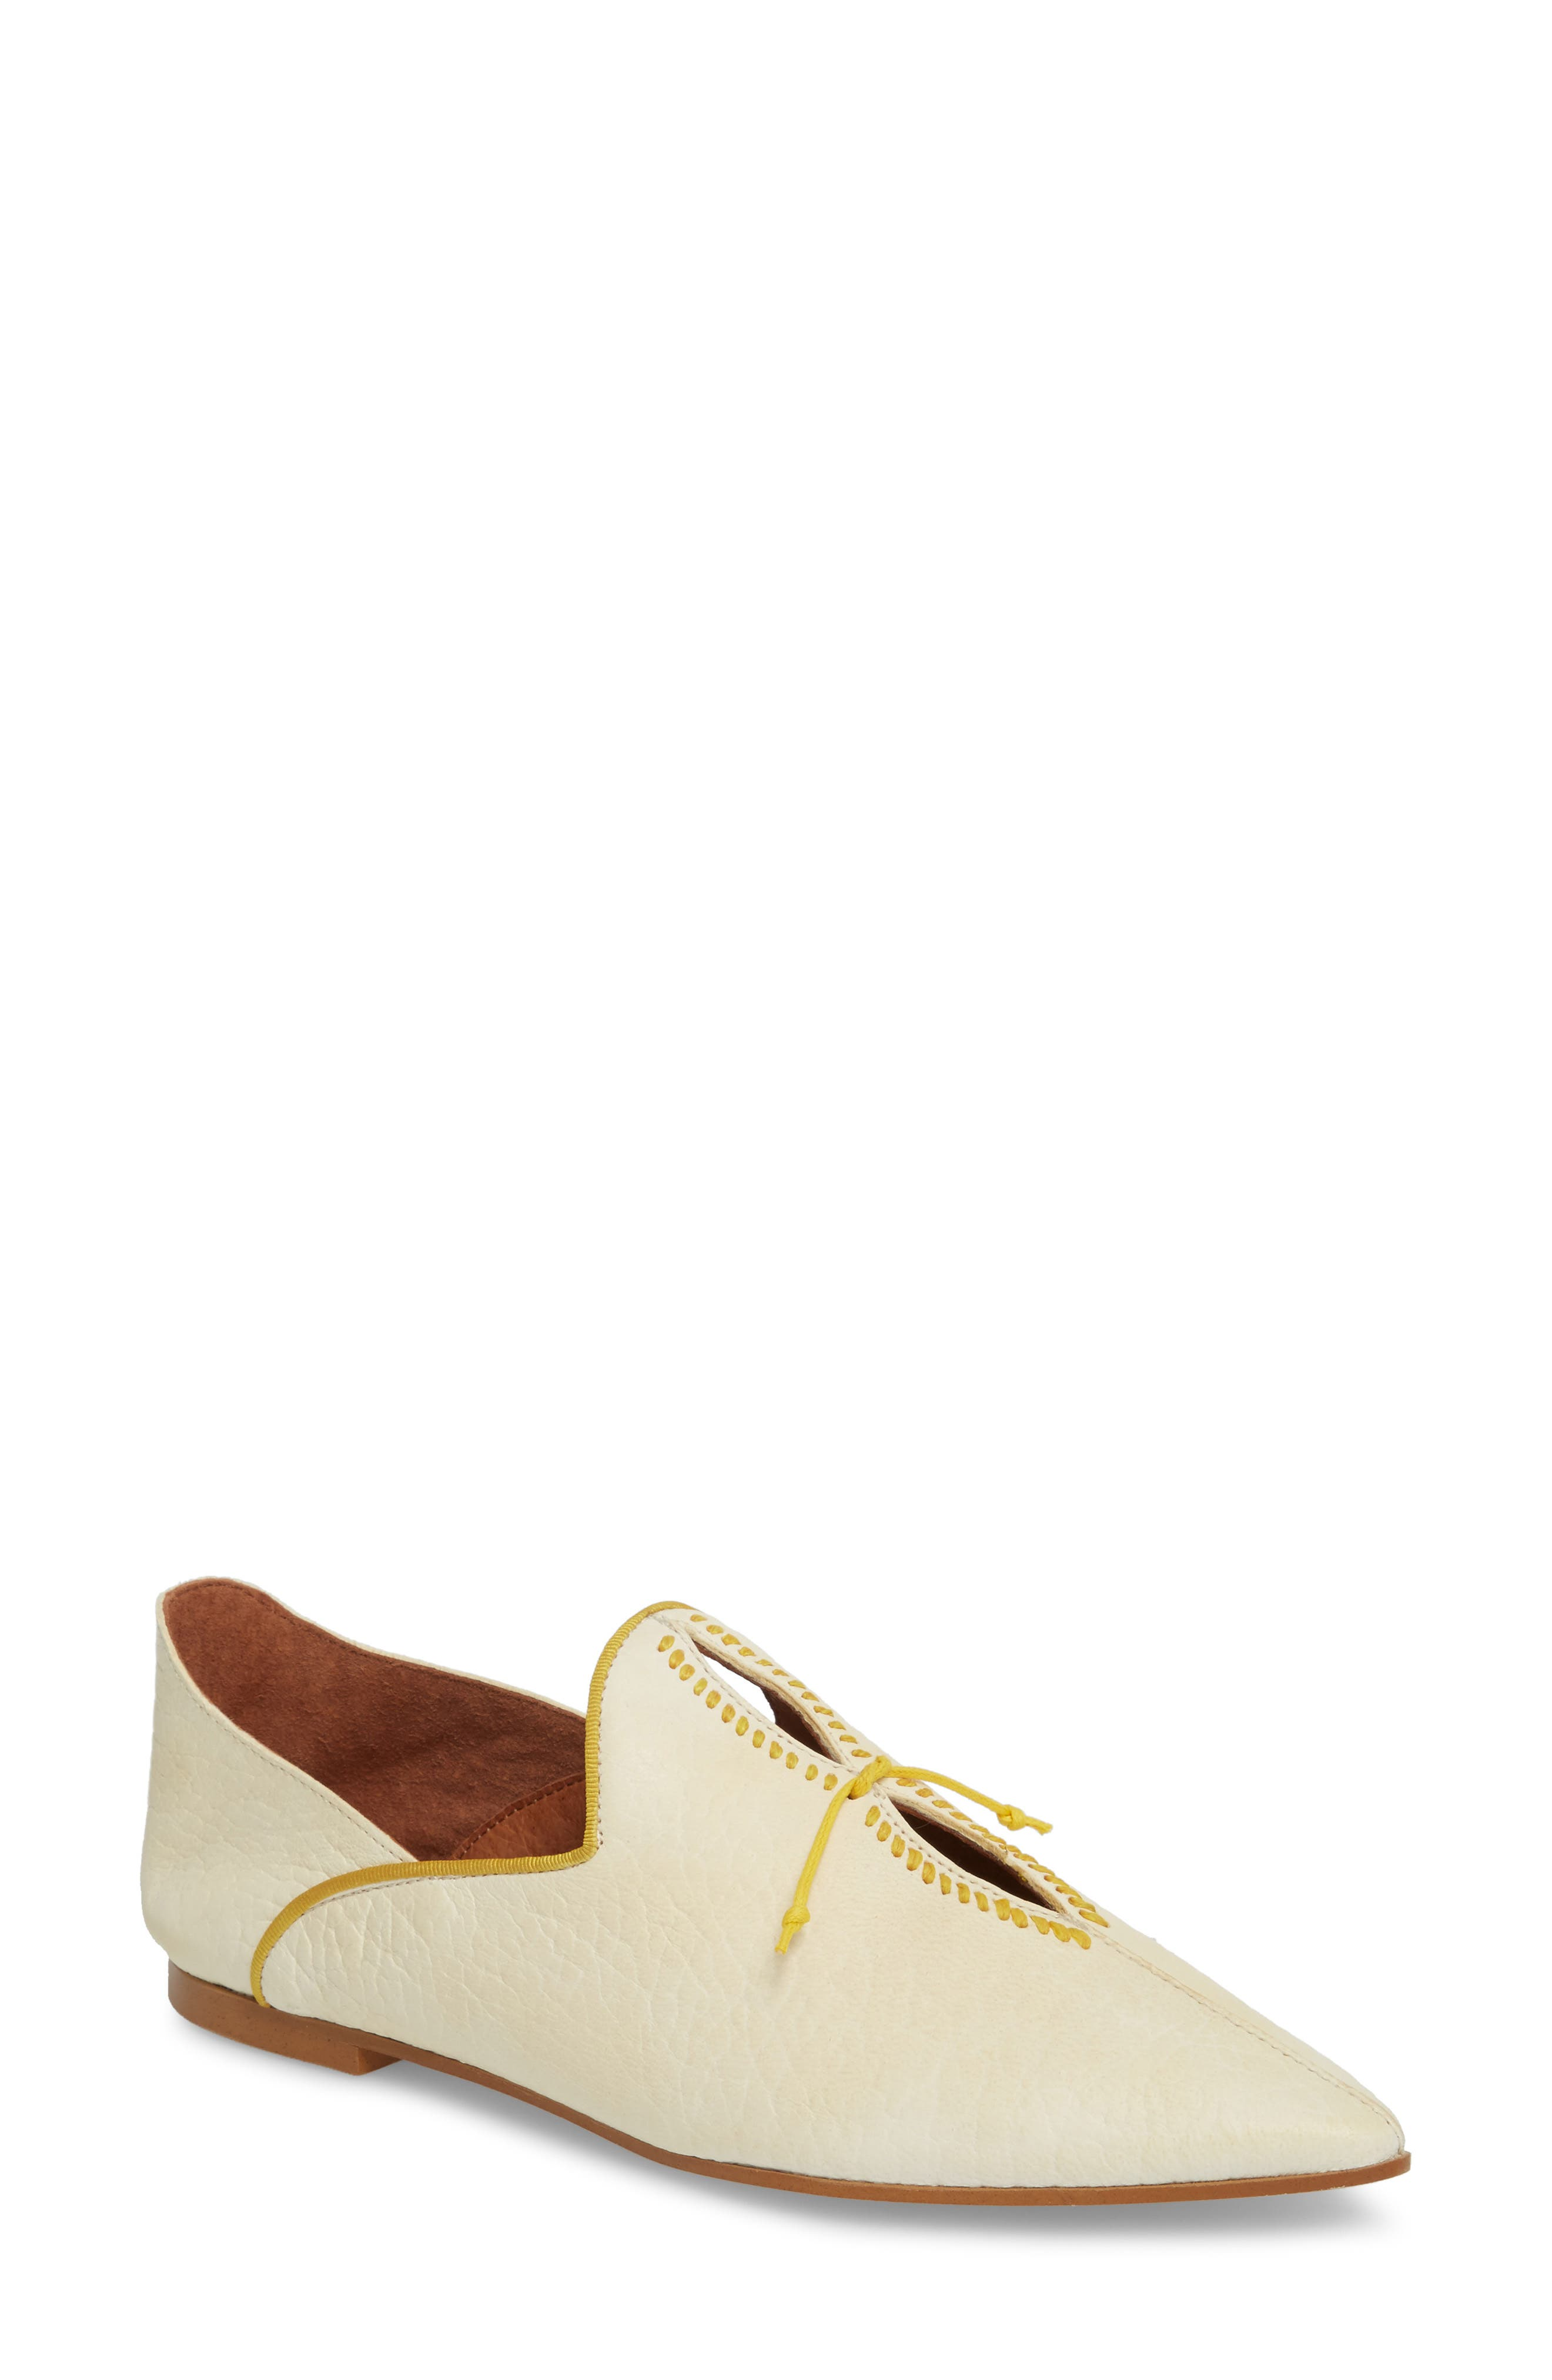 St. Lucia Flat,                         Main,                         color, White